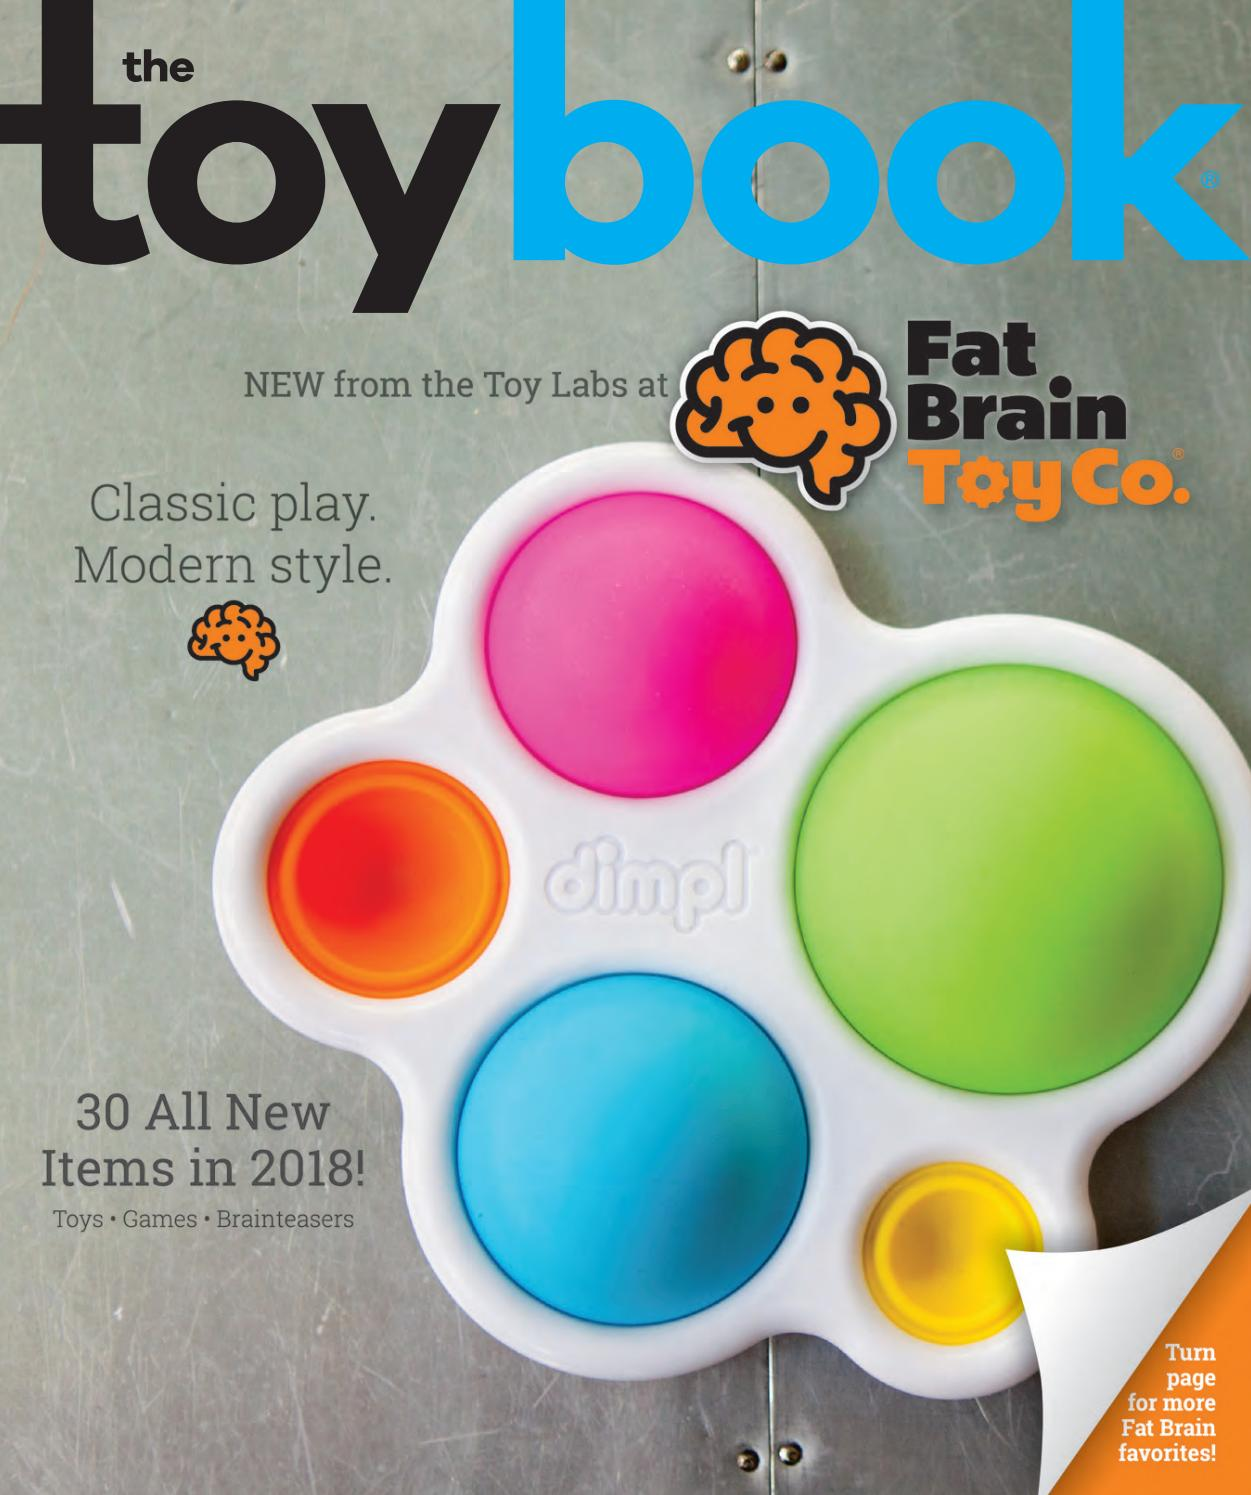 May/June 2018 by The Toy Book - issuu